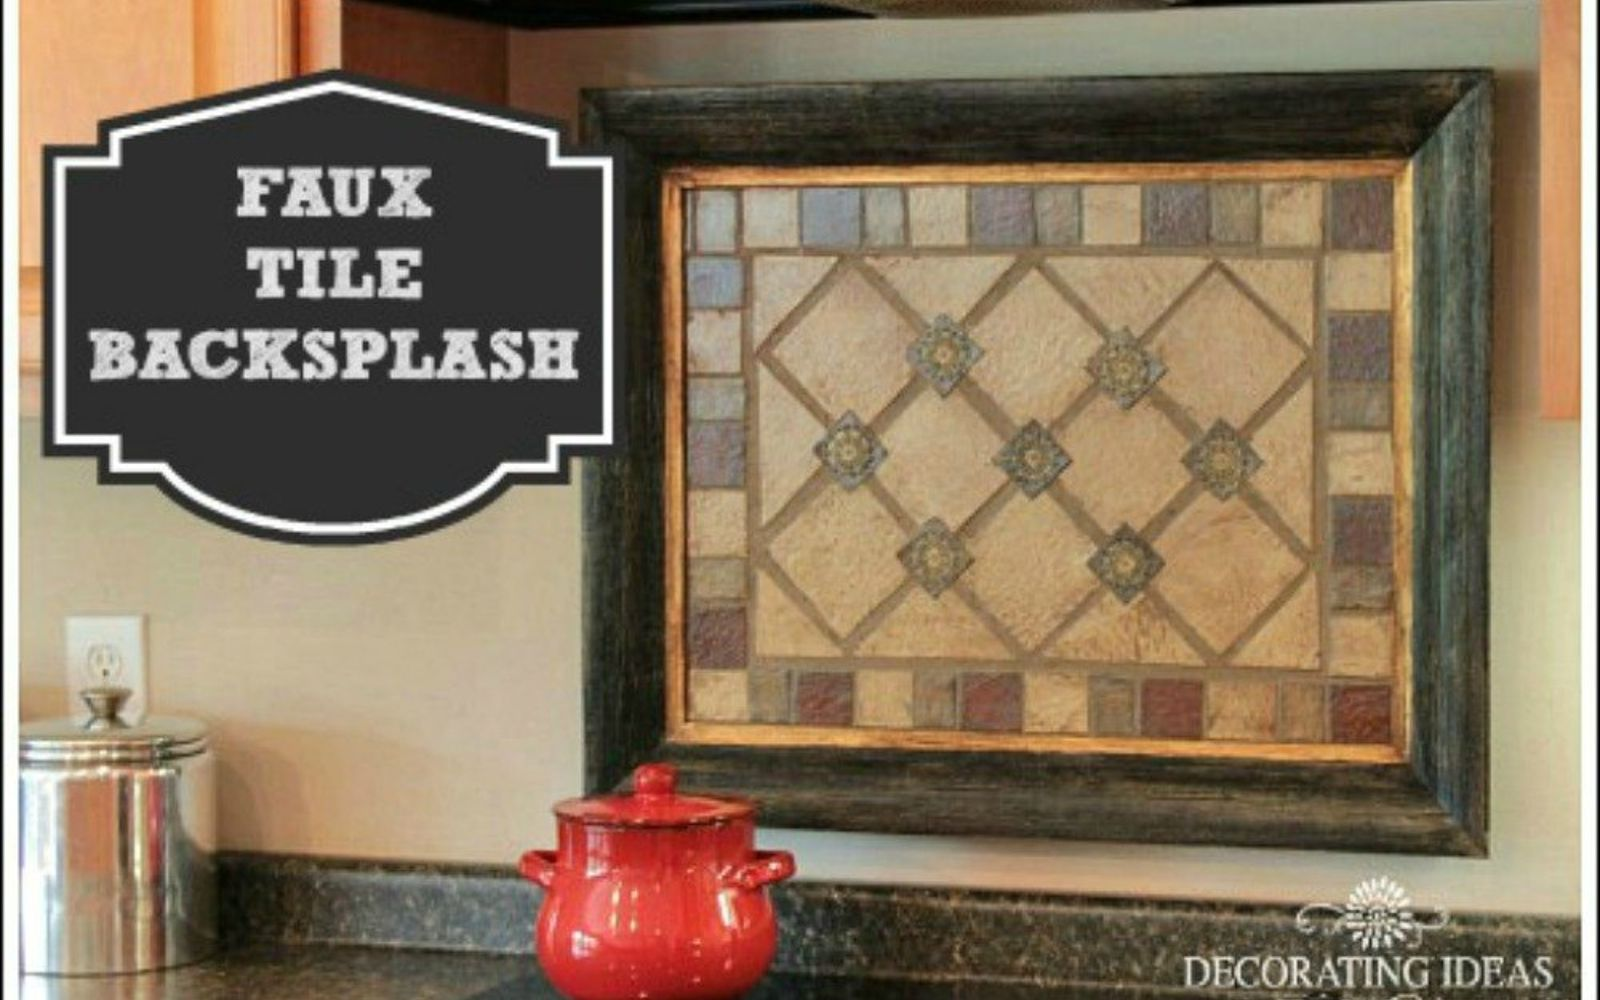 11 gorgeous ways to transform your backsplash without 11 gorgeous ways to transform your backsplash without